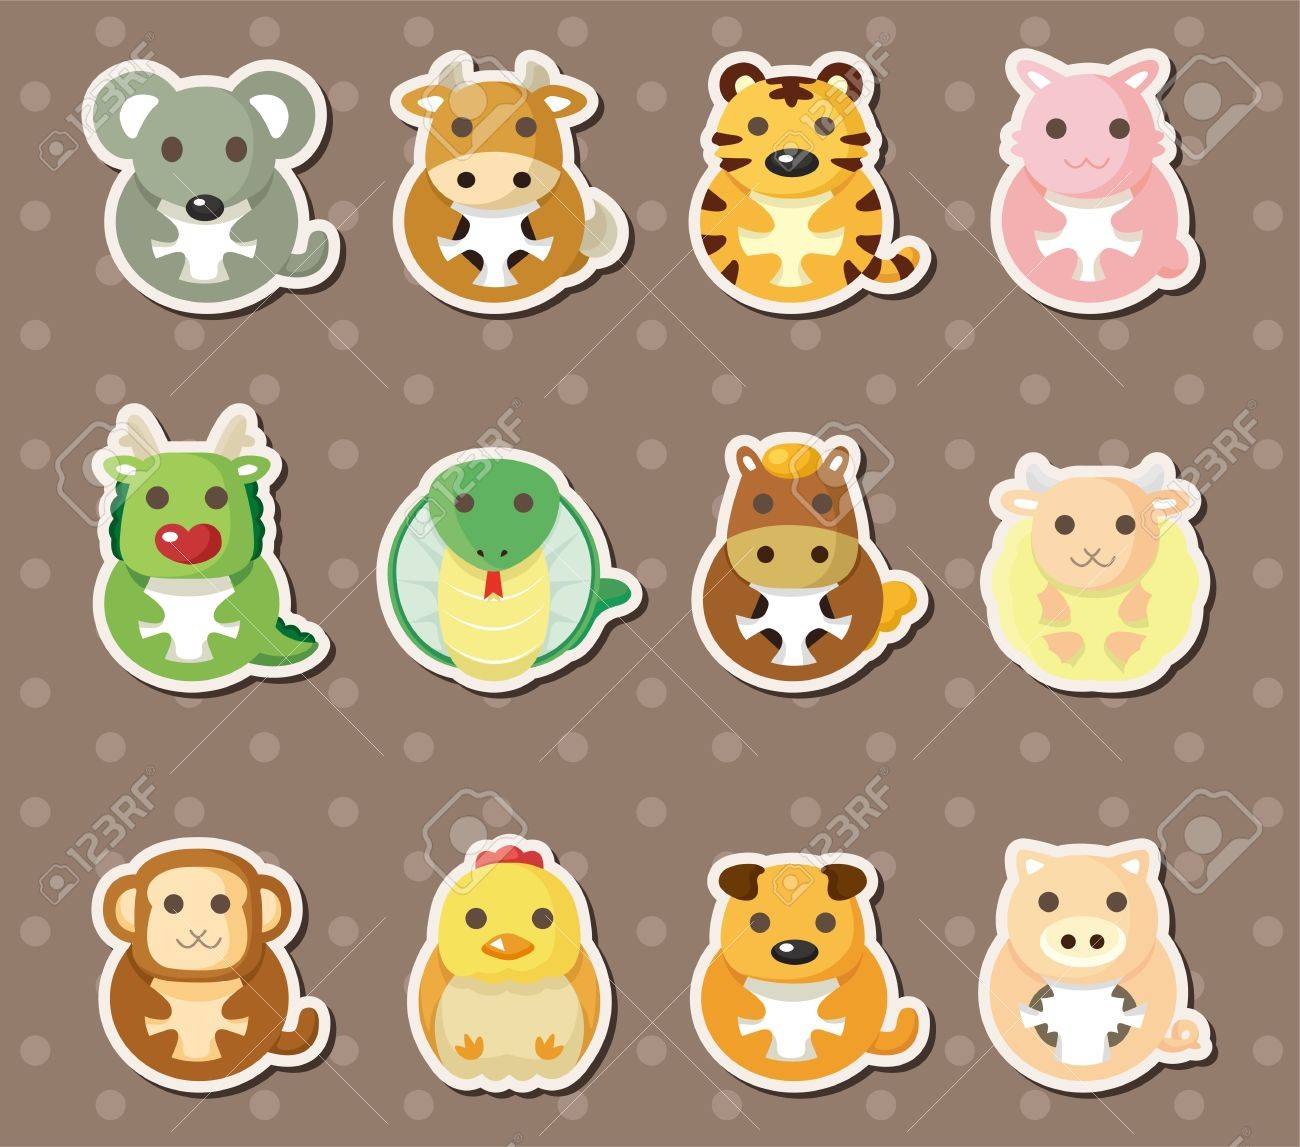 12 Chinese Zodiac animal stickers Stock Vector - 15015823